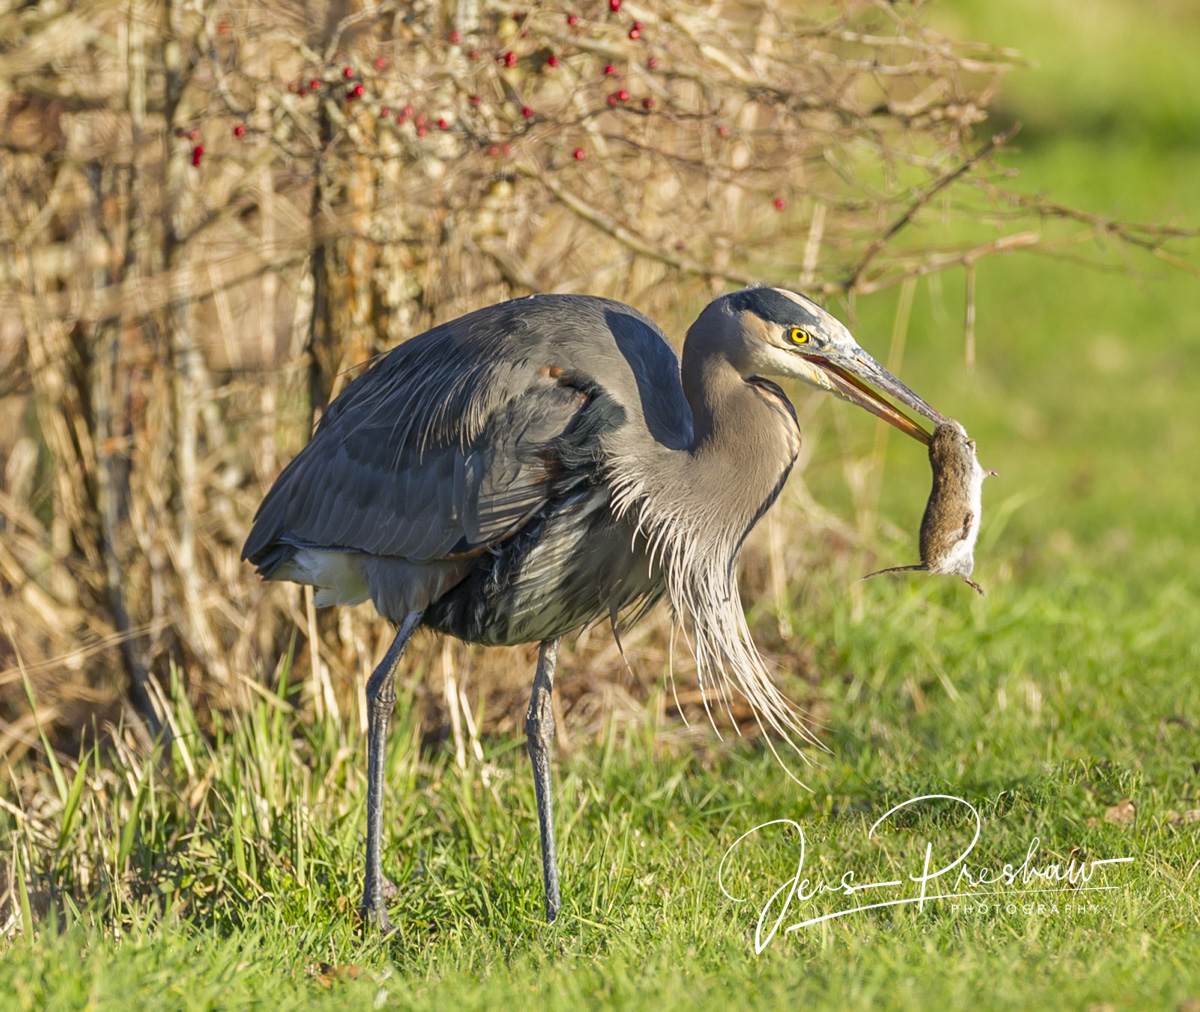 Pacific Great Blue Heron, Ardea herodias fannini, Townsend's Vole, Rodent, Wetlands, British Columbia, West Coast, Winter  , photo